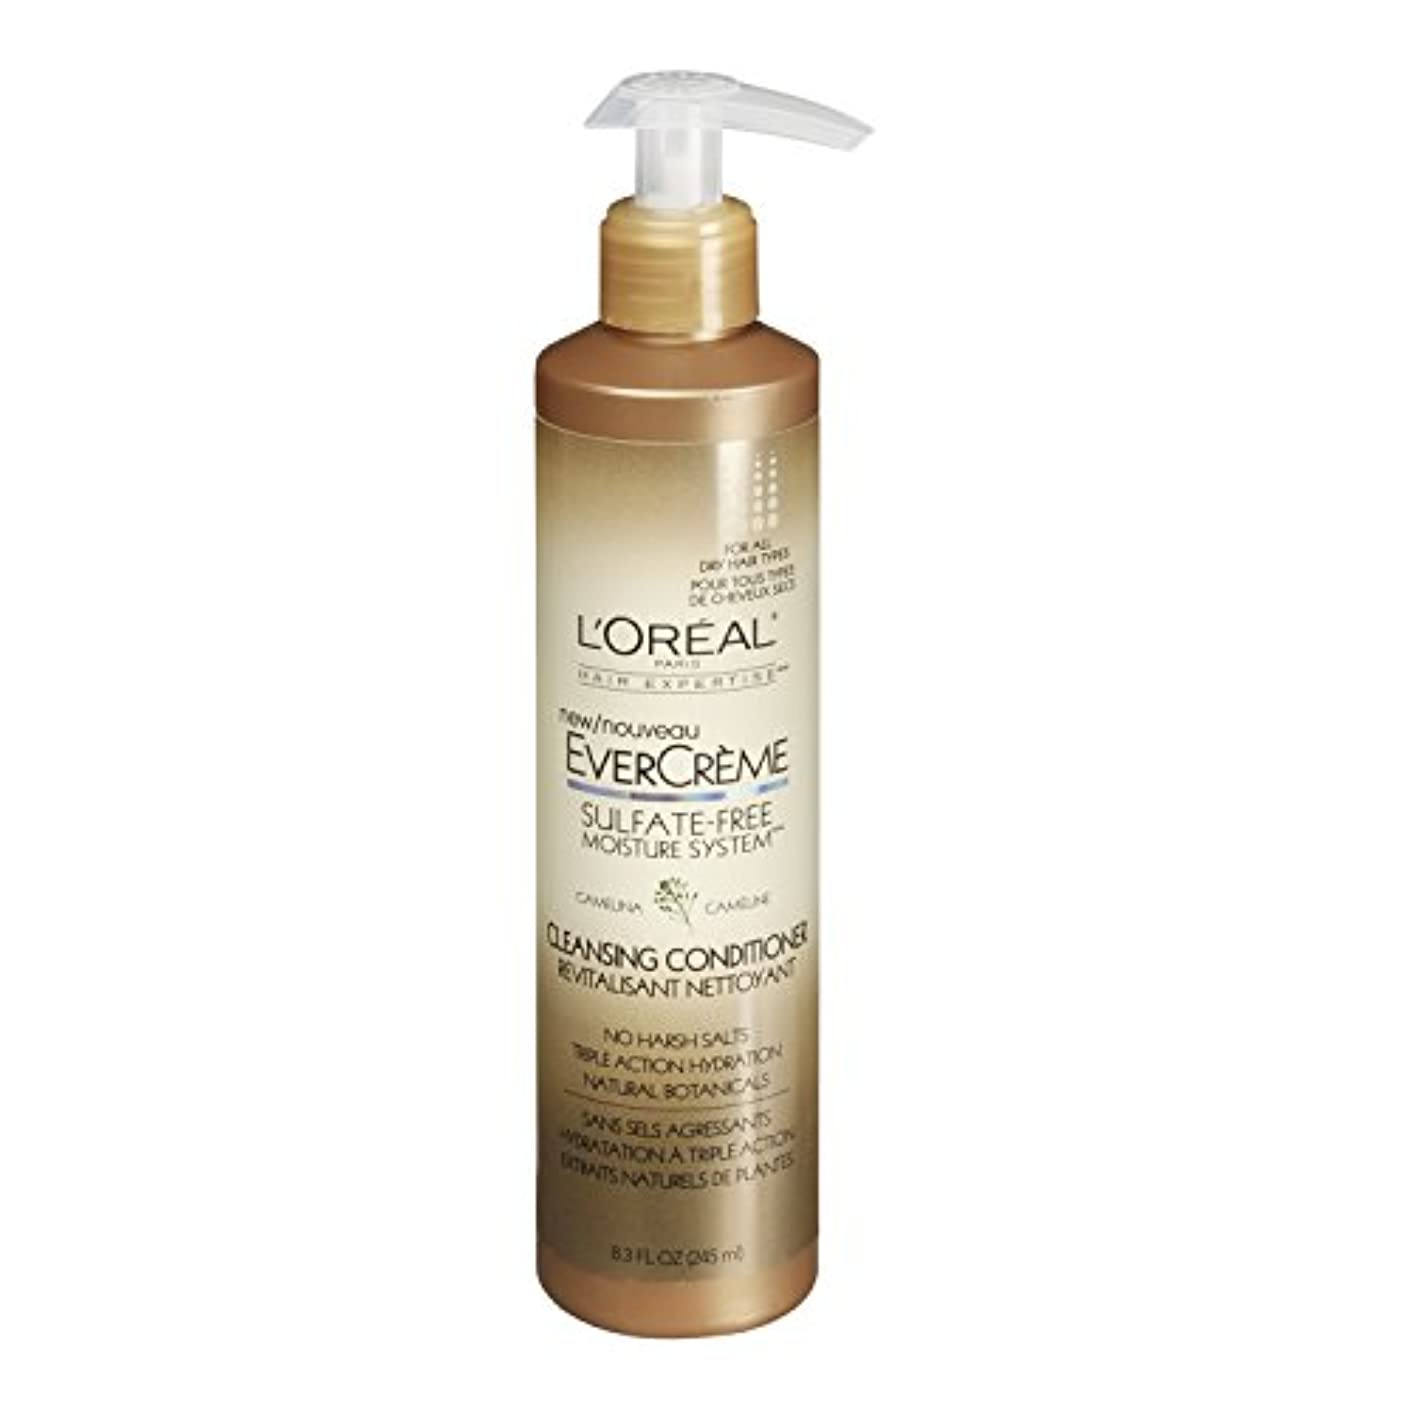 ピクニックをする緑シャークL'Oreal Paris EverCreme Sulfate-Free Moisture System Cleansing Conditioner, 8.3 fl. Oz. by L'Oreal Paris Hair Care [並行輸入品]